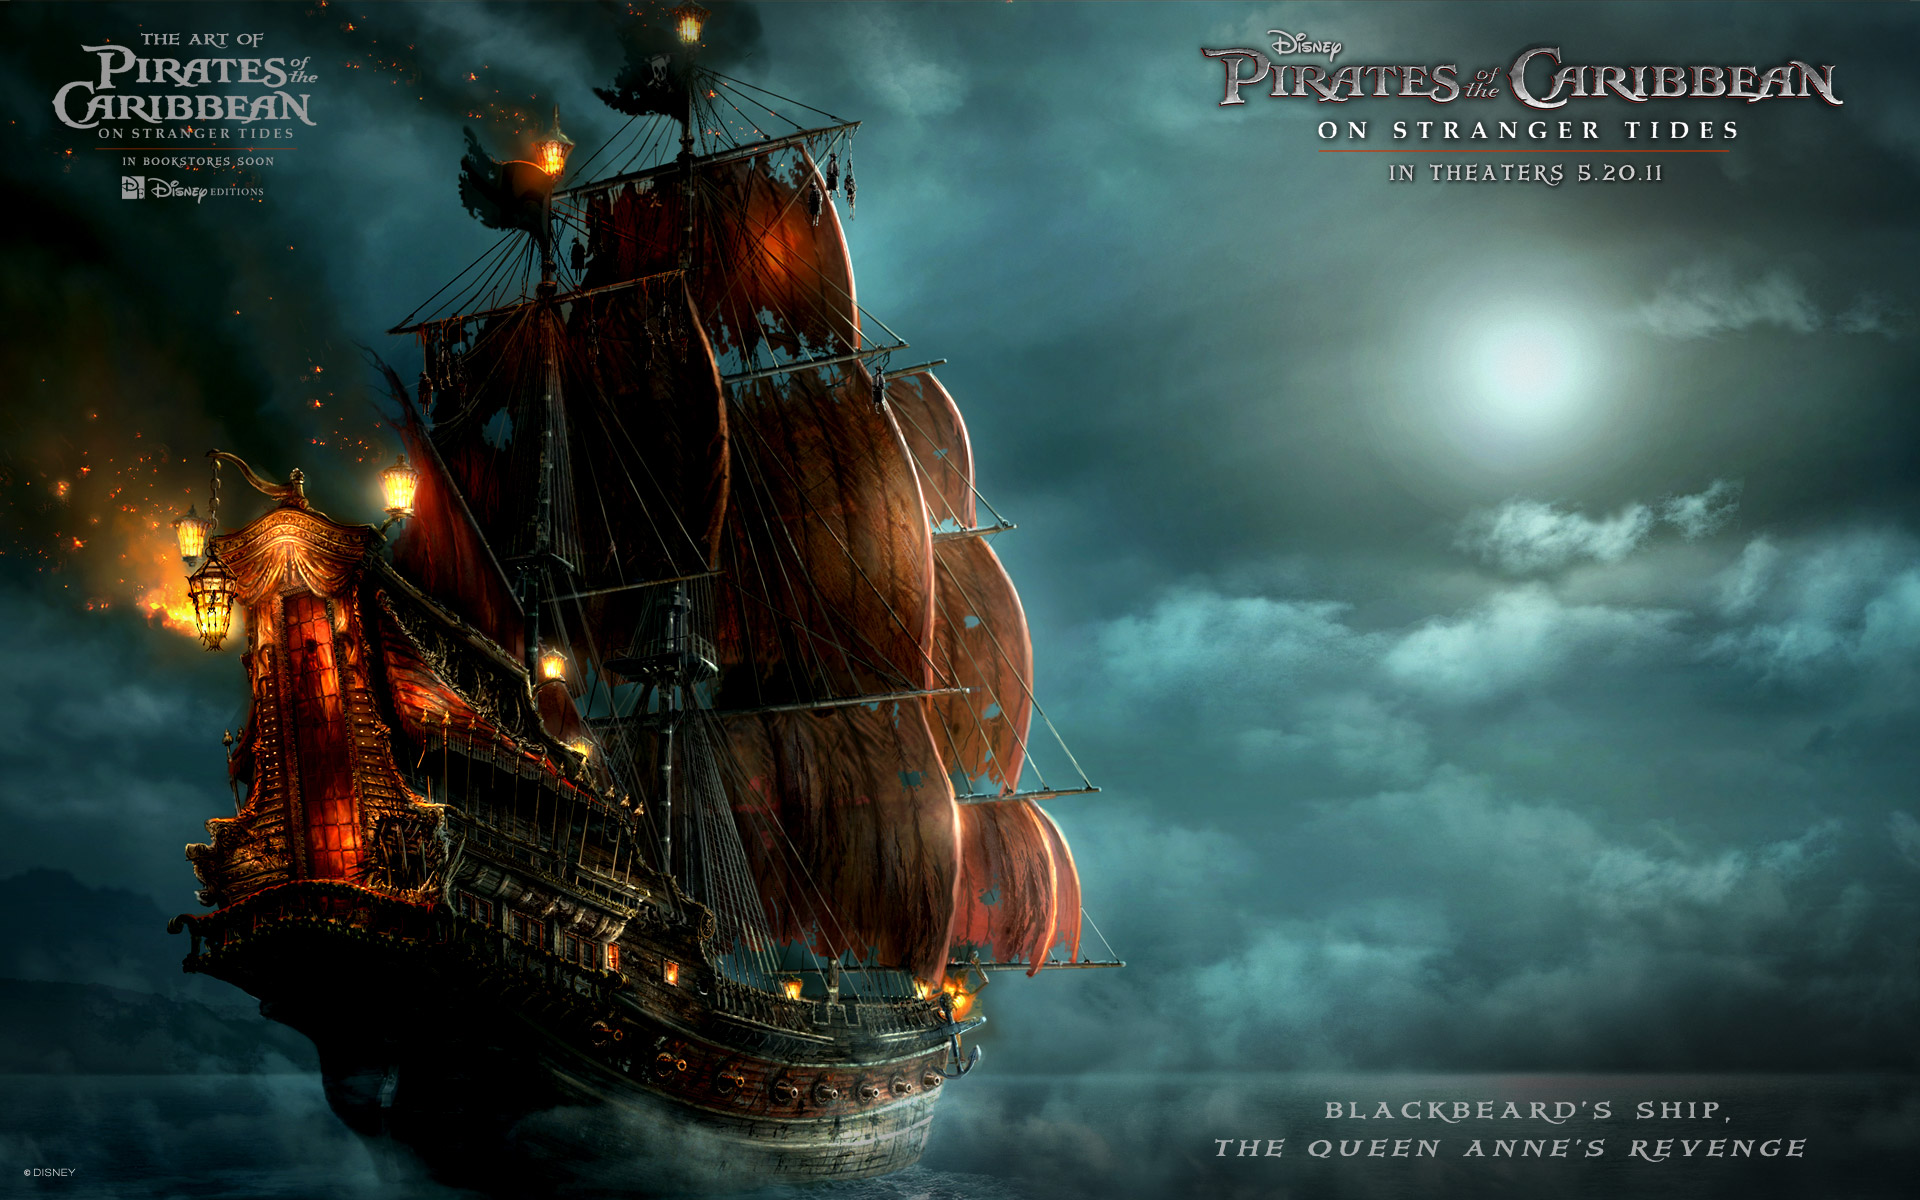 Blackbeard's Ship in Pirates Of The Caribbean 4